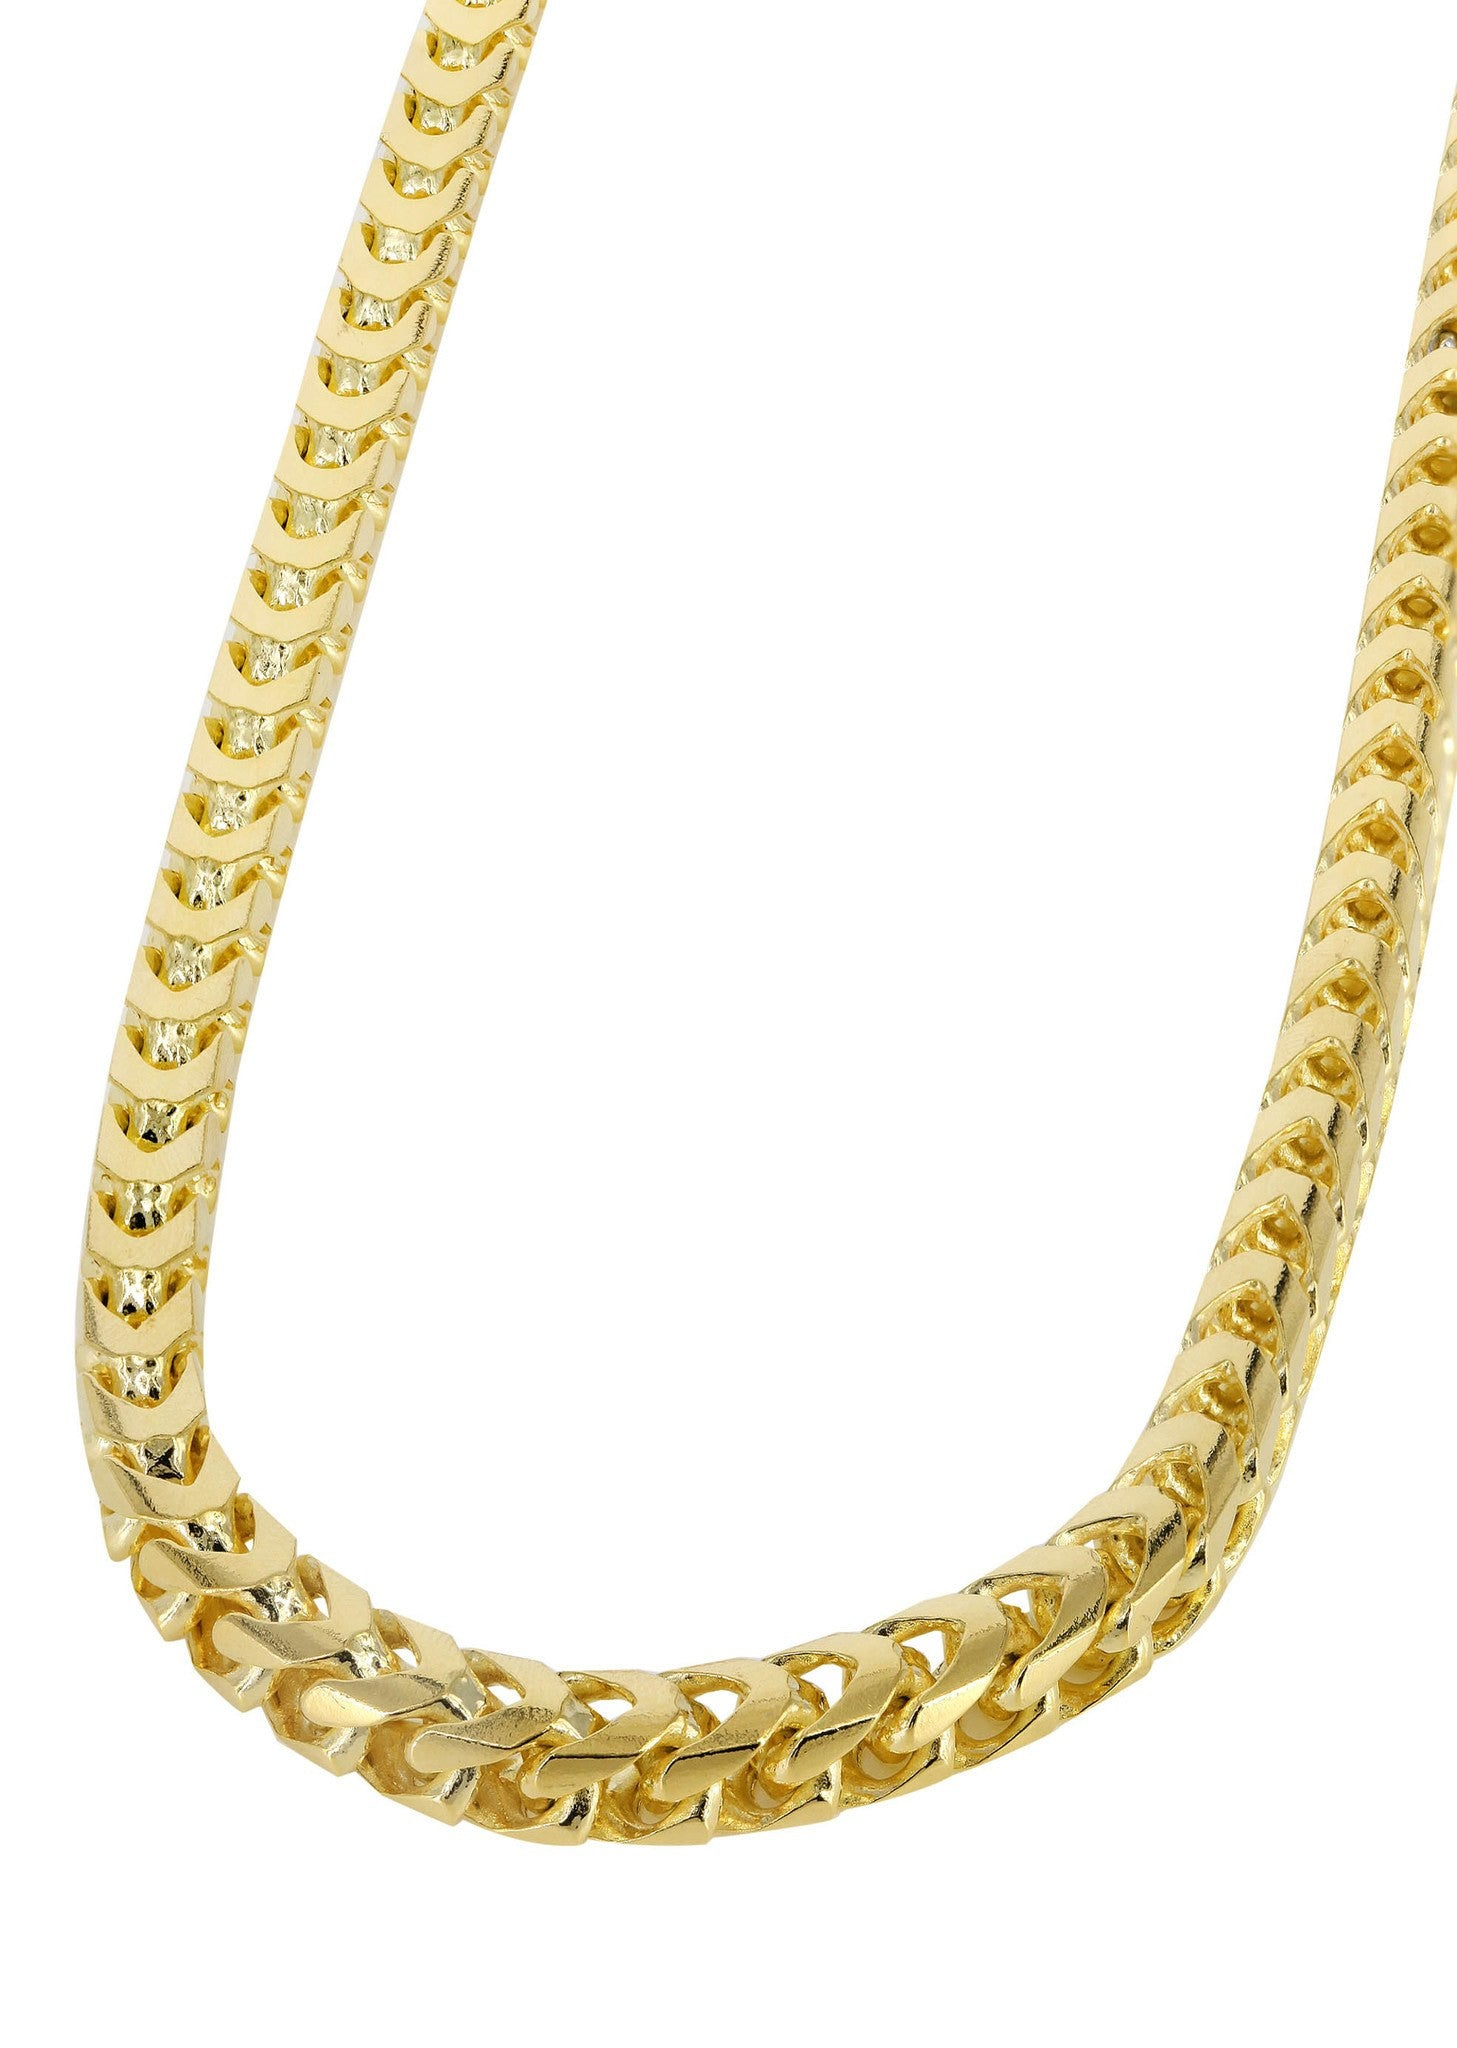 900b6bc2b1a 14K Gold Chain - Mens Solid Franco Chain – FrostNYC